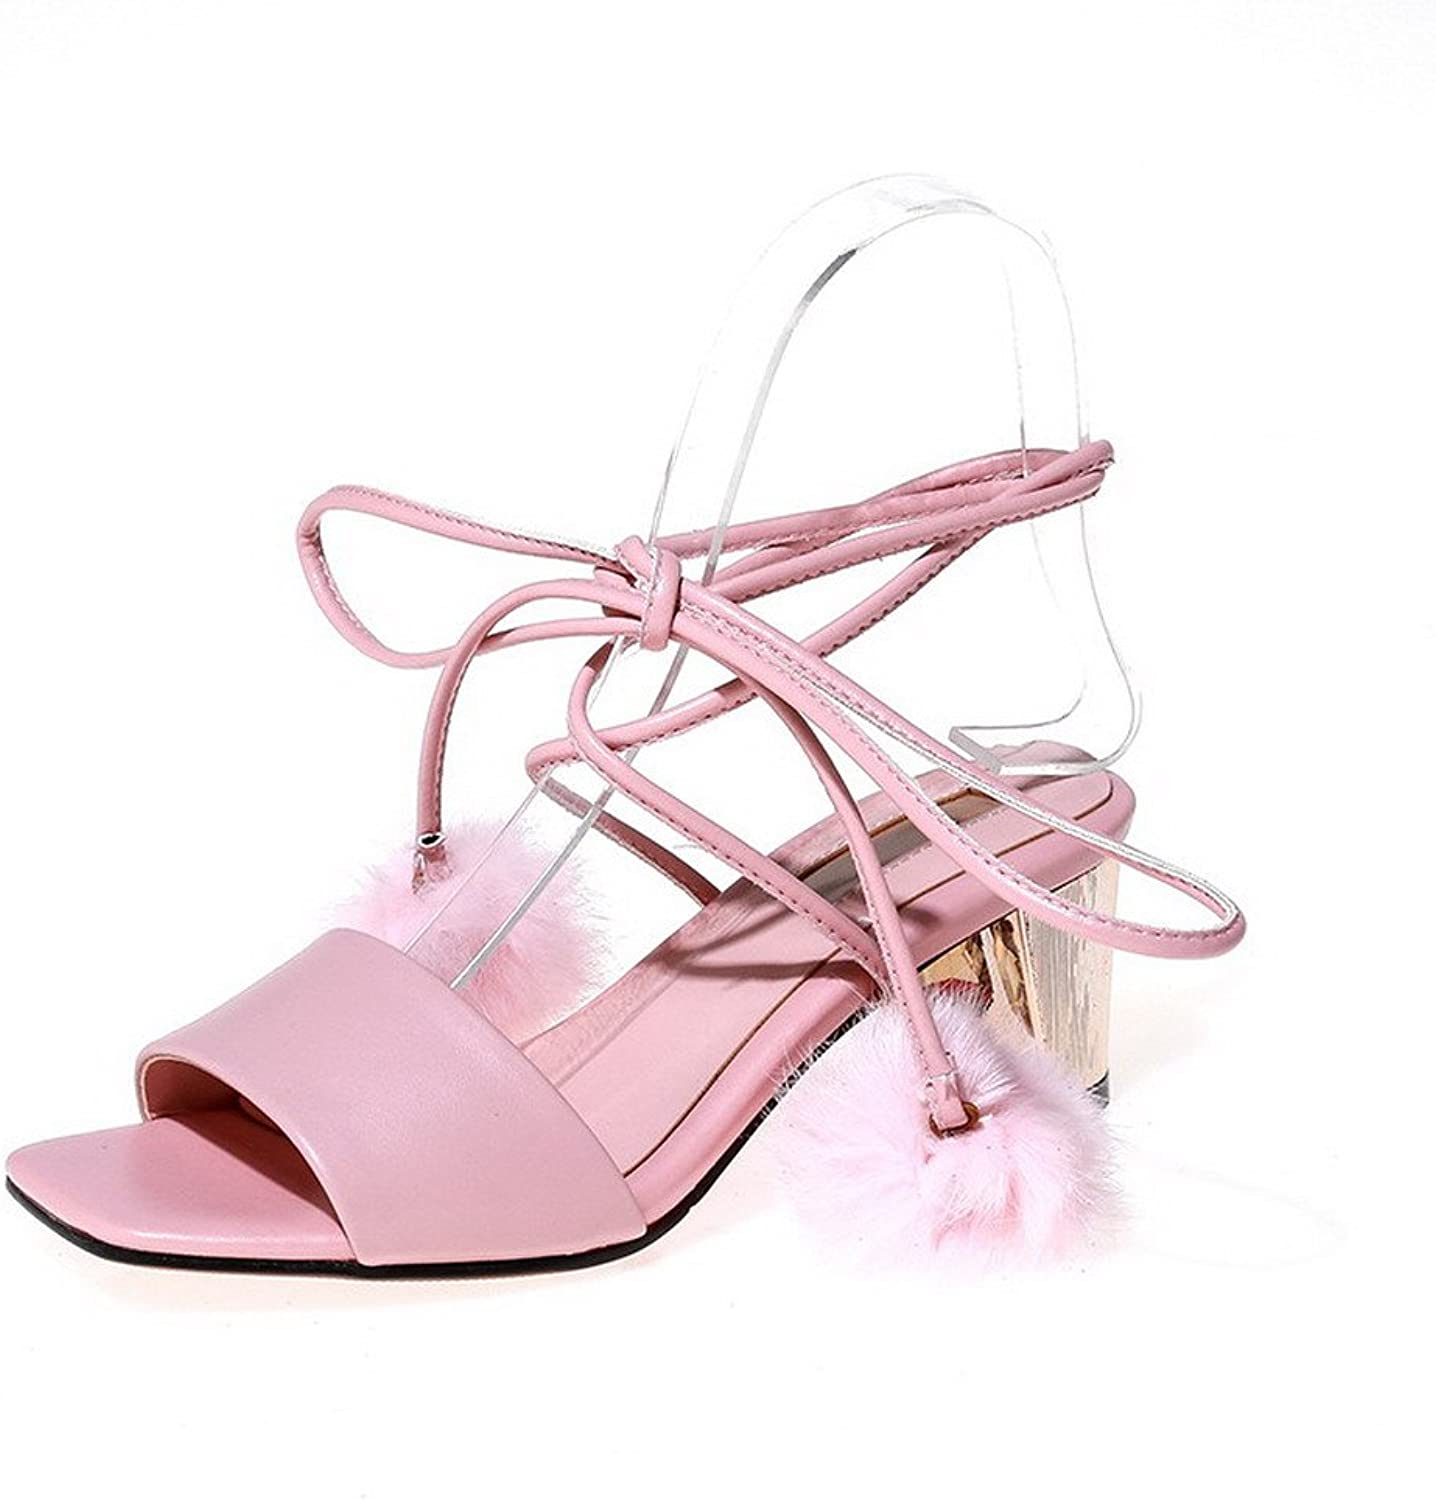 WeiPoot Women's Kitten-Heels Soft Material Solid Lace-up Open Toe Sandals